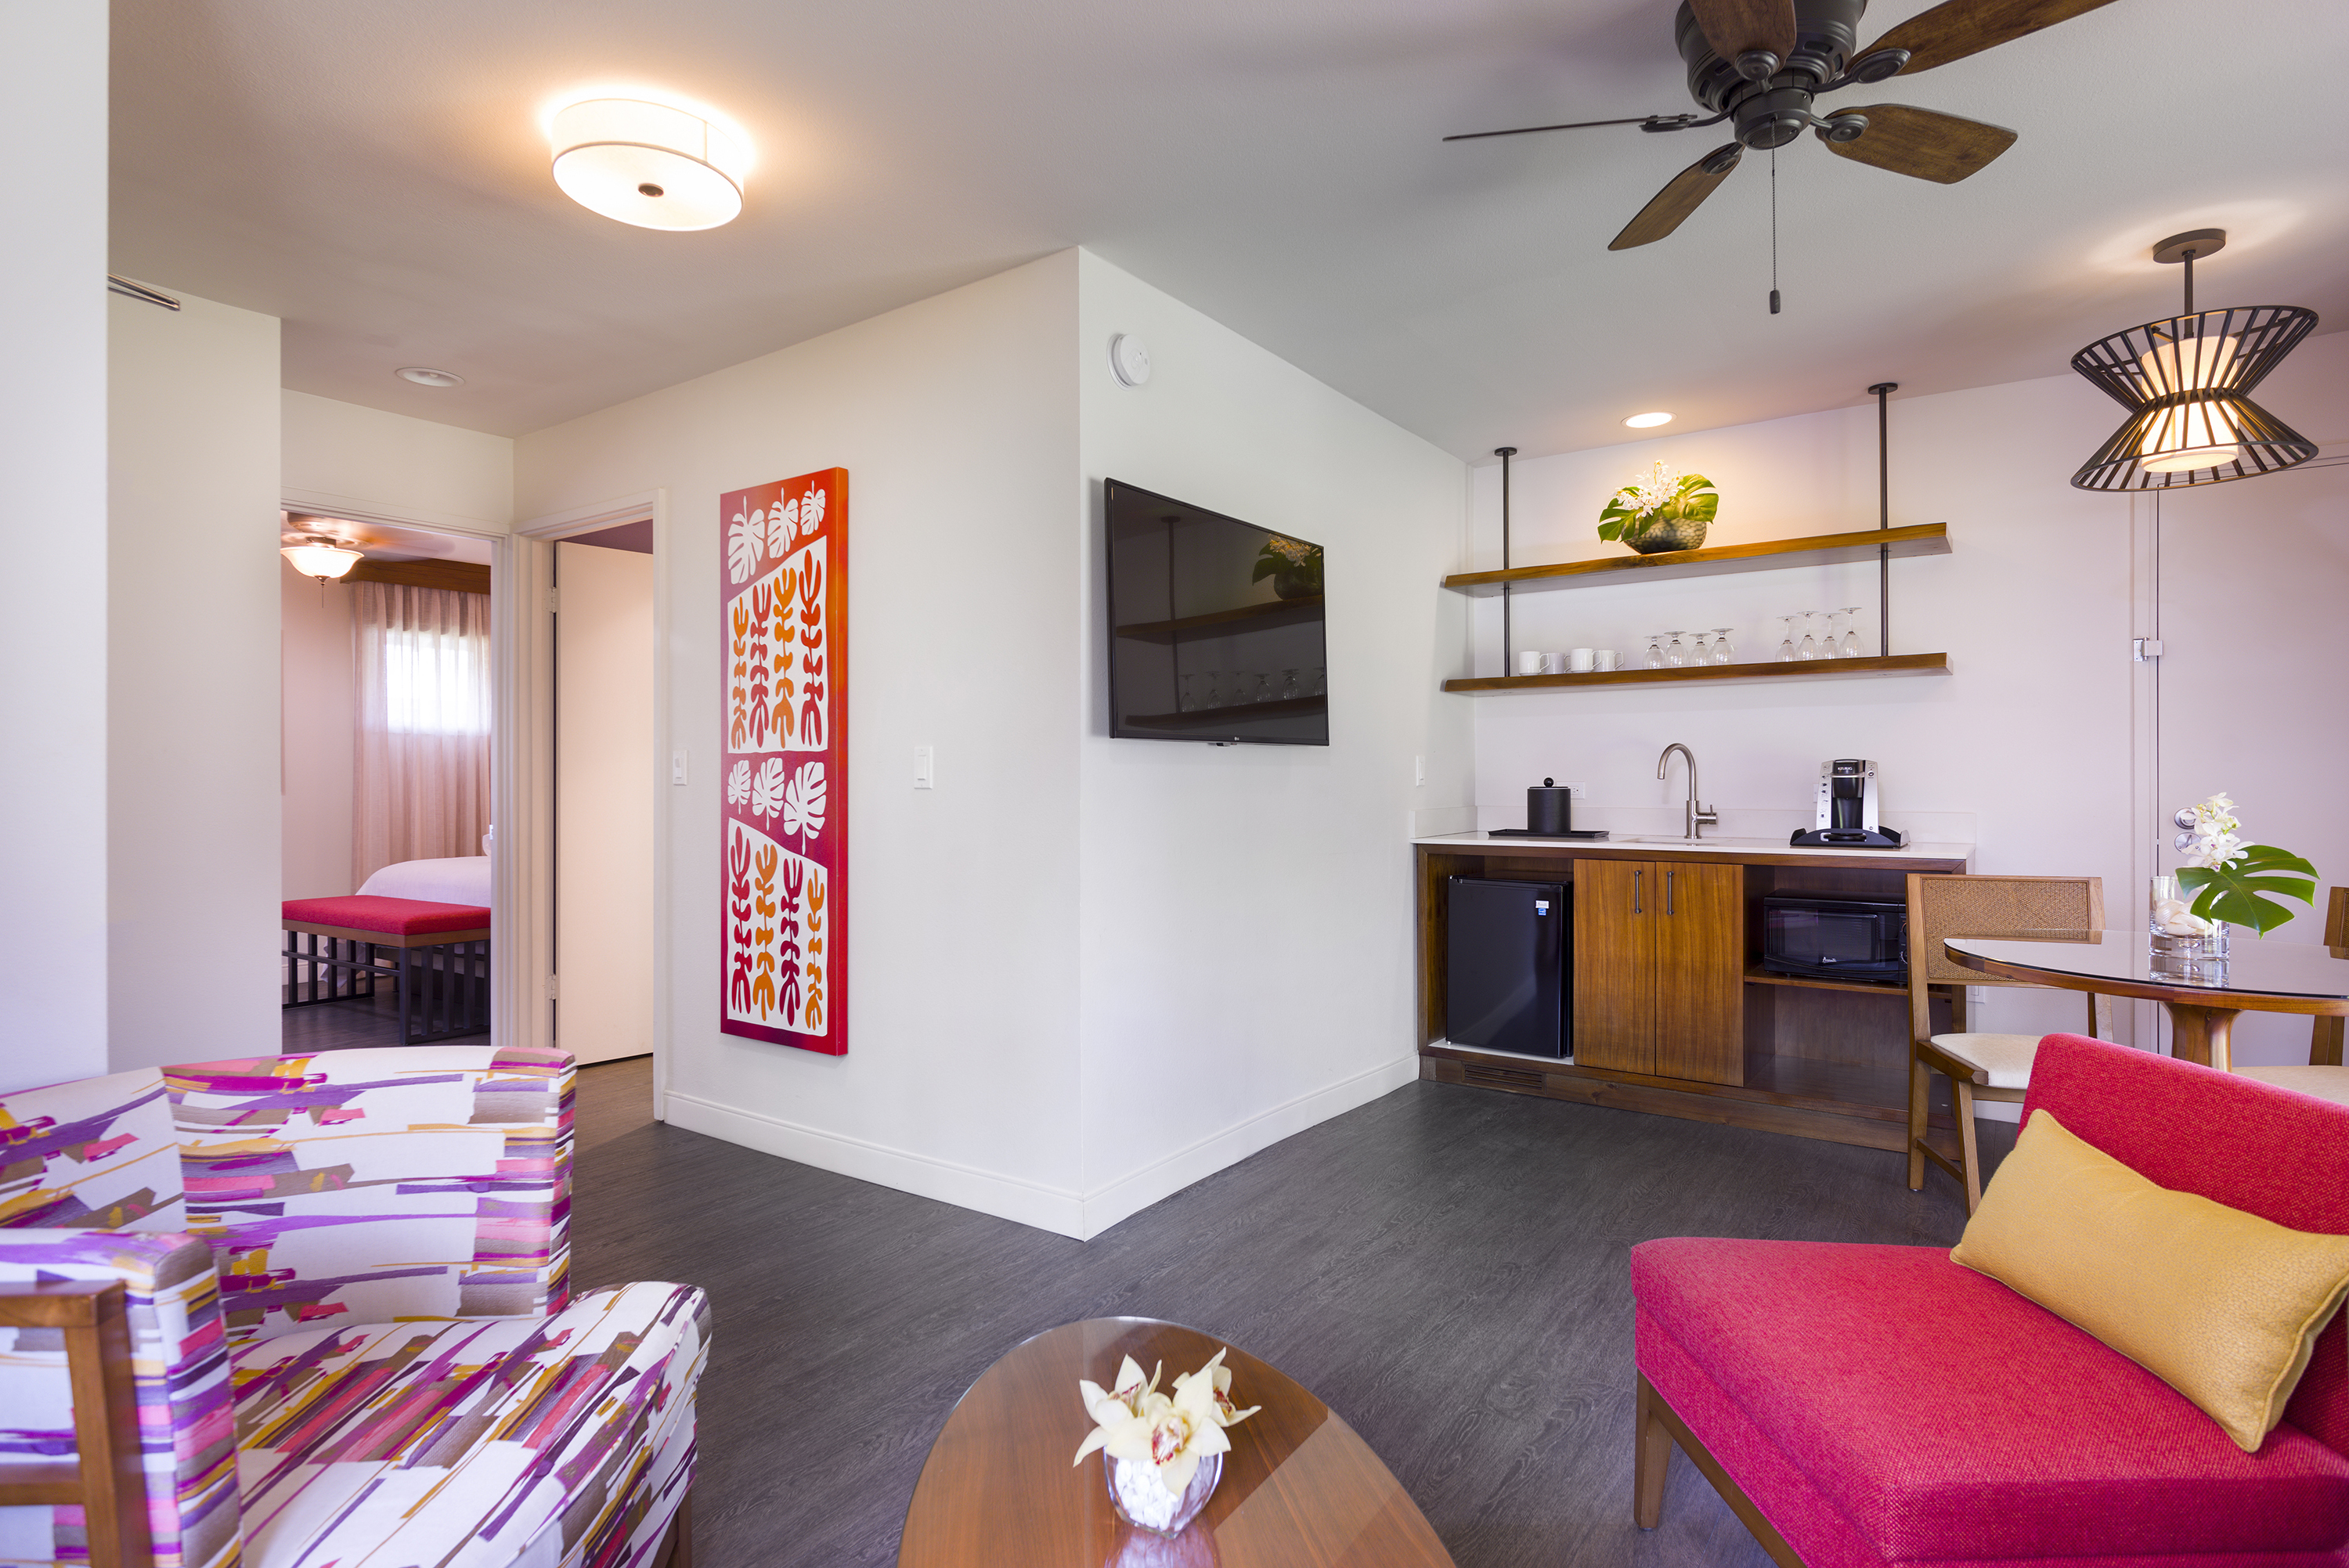 Hilton Garden Inn Kauai at Wailua Bay - The beach view cottages at Hilton Garden Inn Kauai at Wailua Bay are an essential ingredient for a perfect island getaway, and the hotel's best kept secret.(Photo: Business Wire)